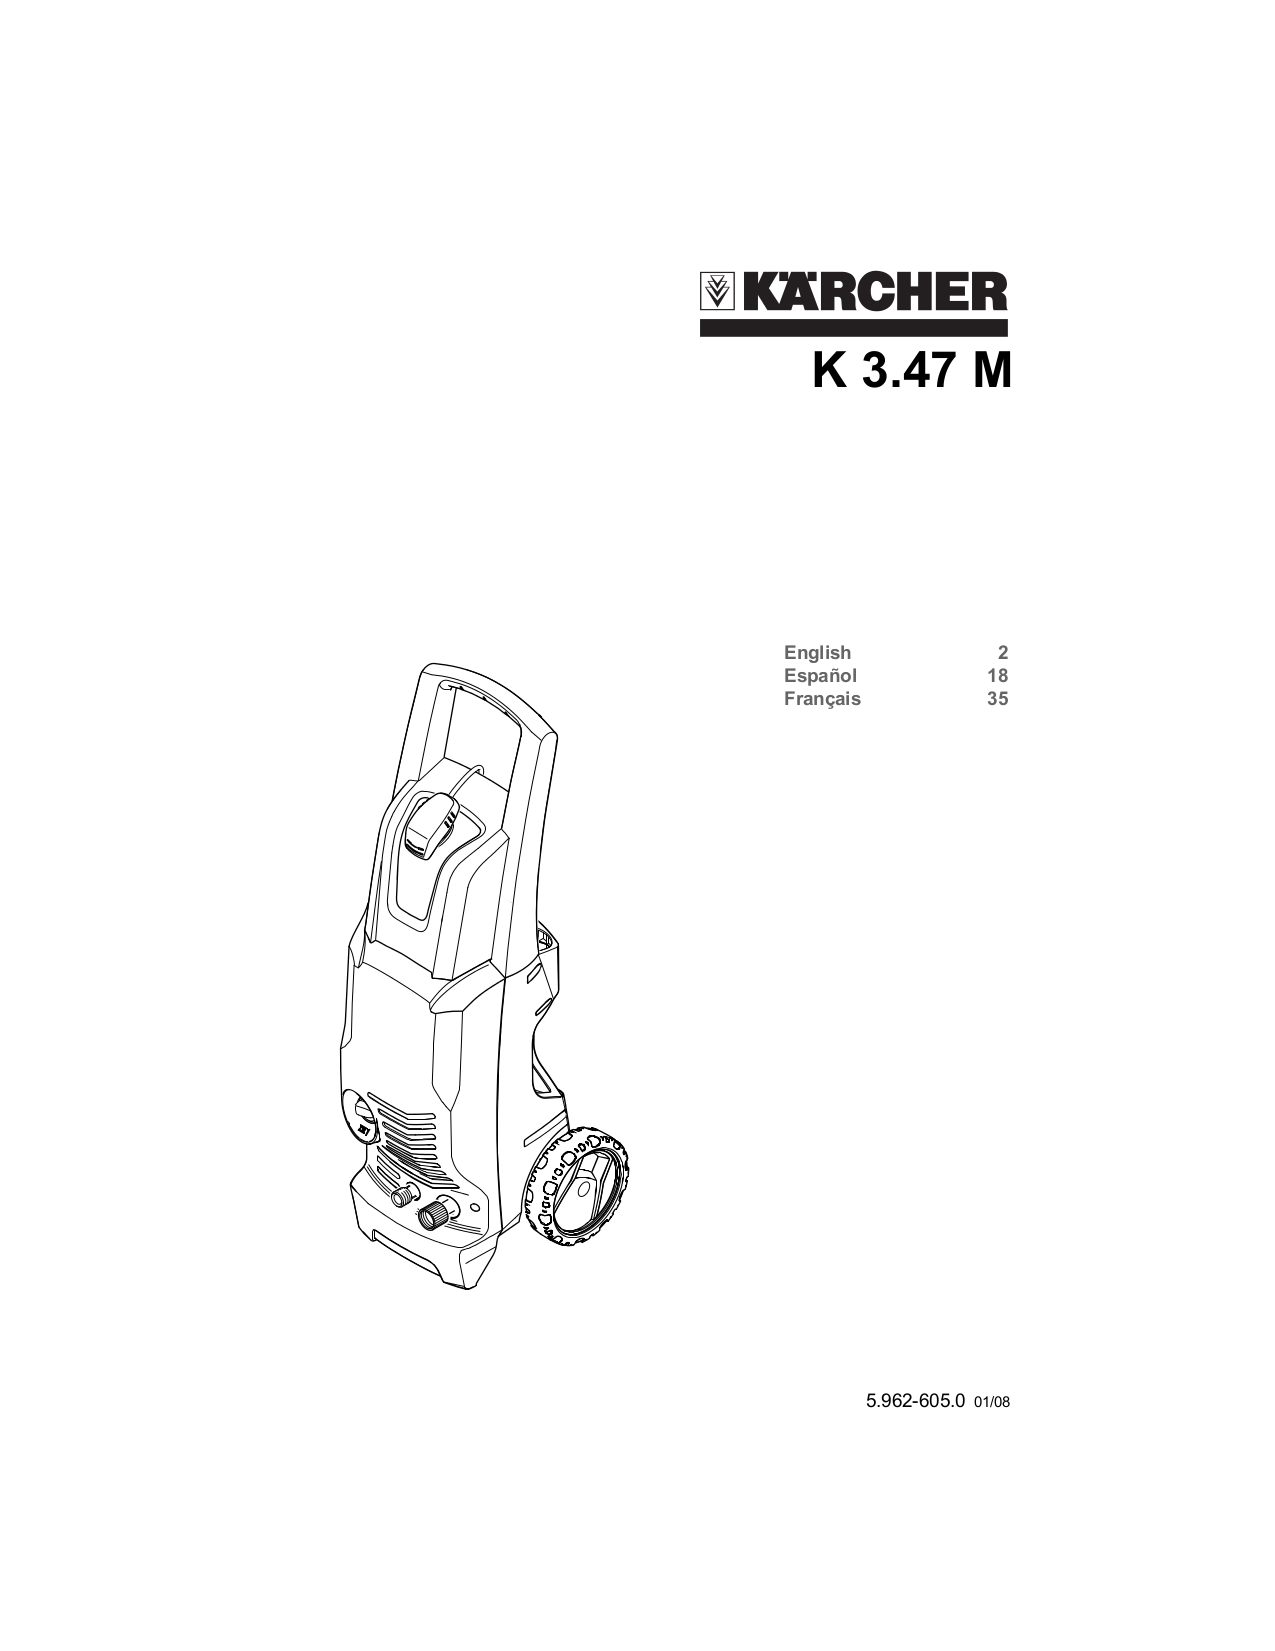 Download free pdf for Karcher K 3.47 M Pressure Washers